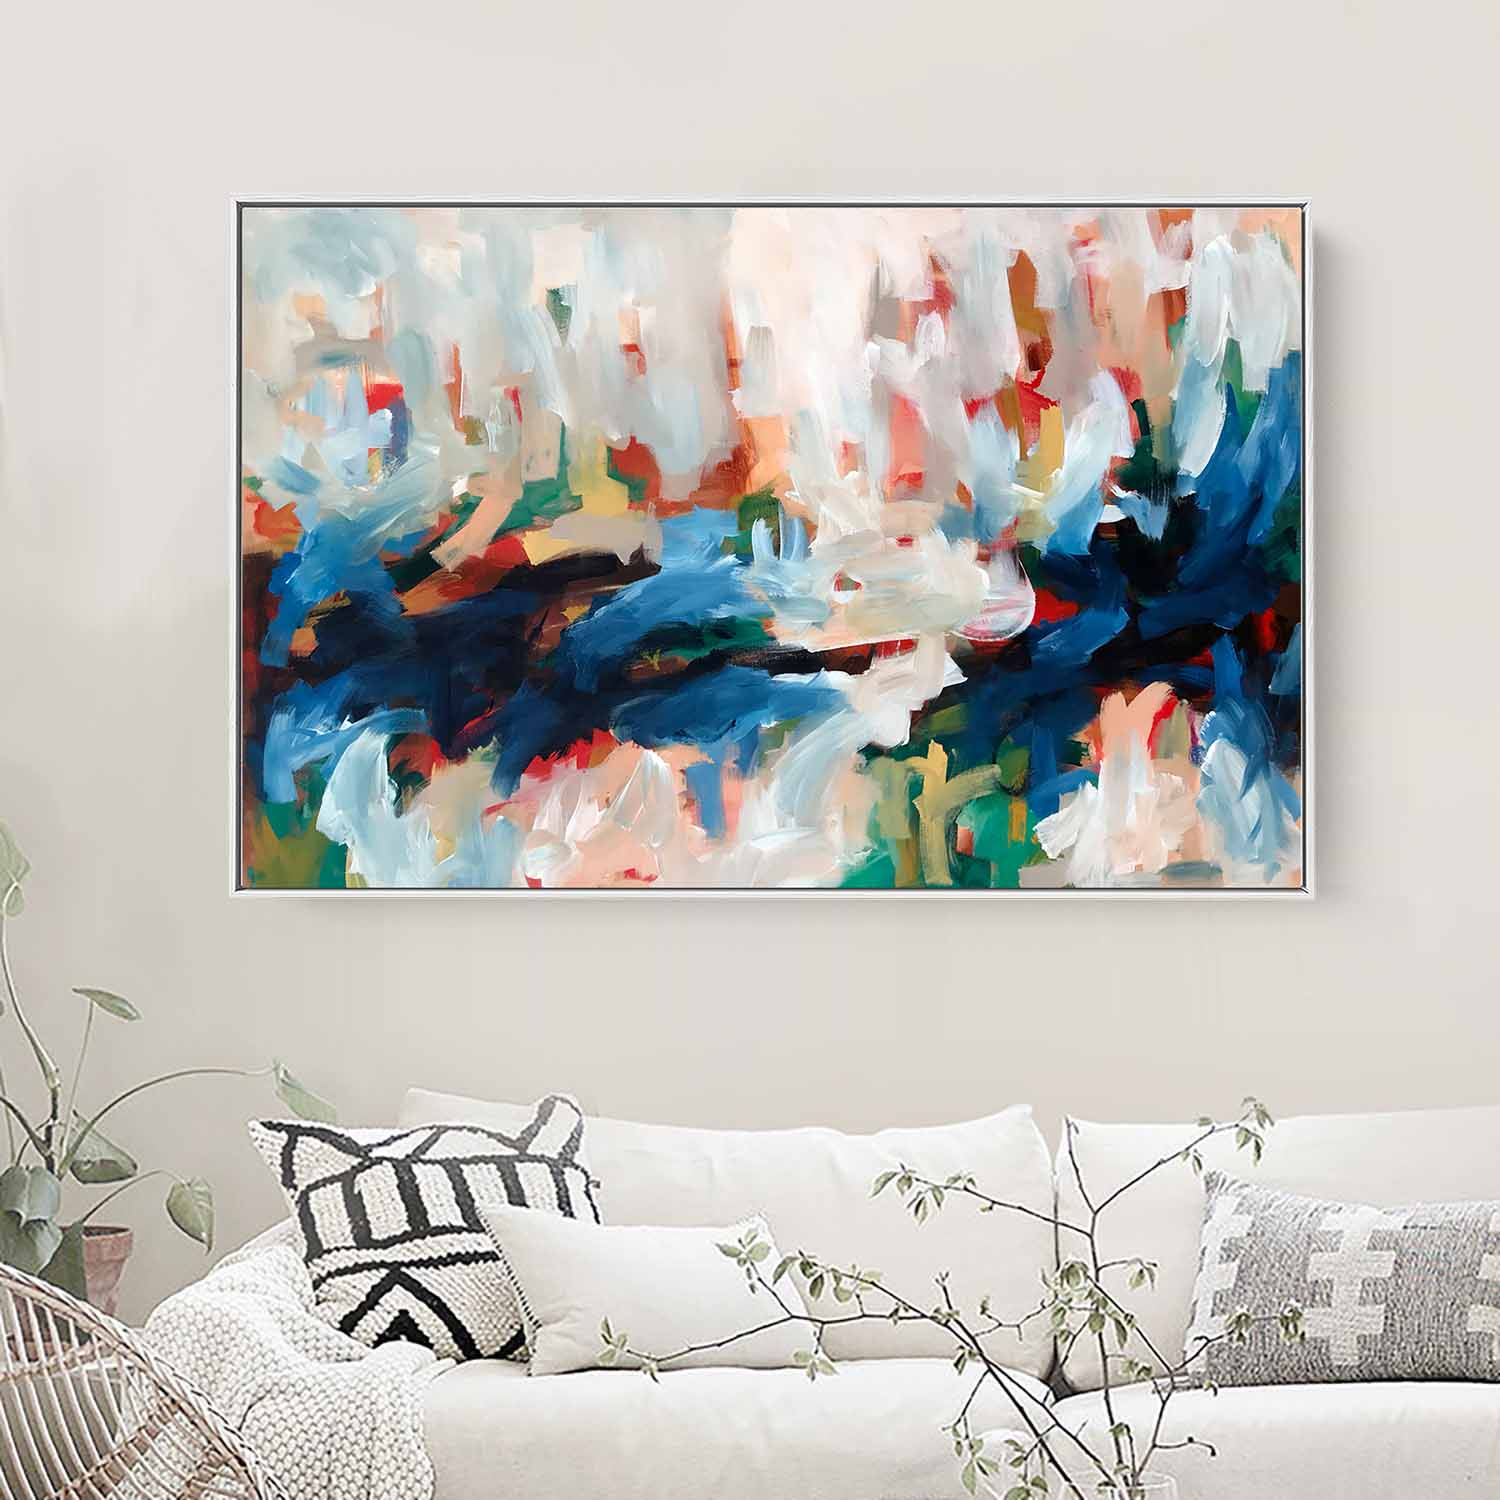 Autumn Leaves 3 - 117x76 cm - Original Painting